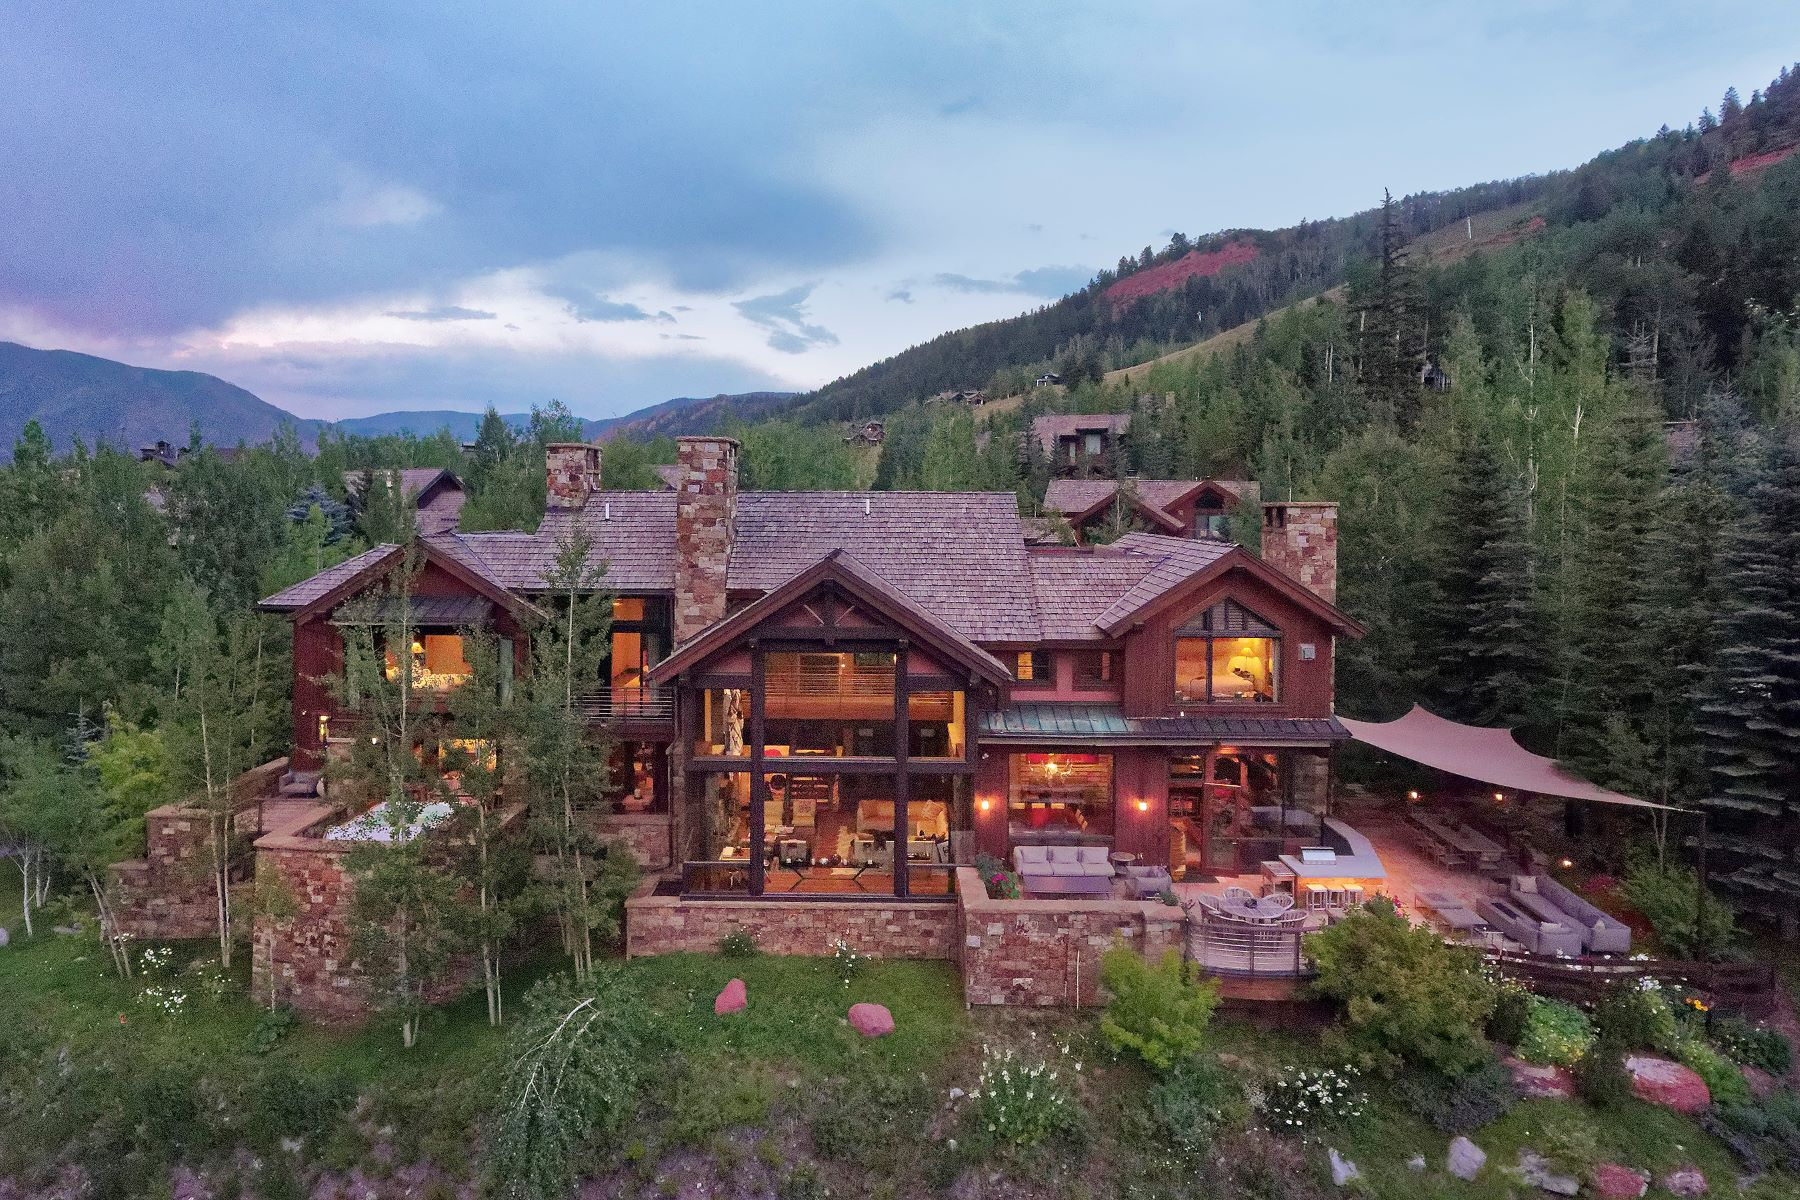 Single Family Homes for Sale at In the Heart of Aspen Highlands 105 Exhibition Lane Aspen, Colorado 81611 United States